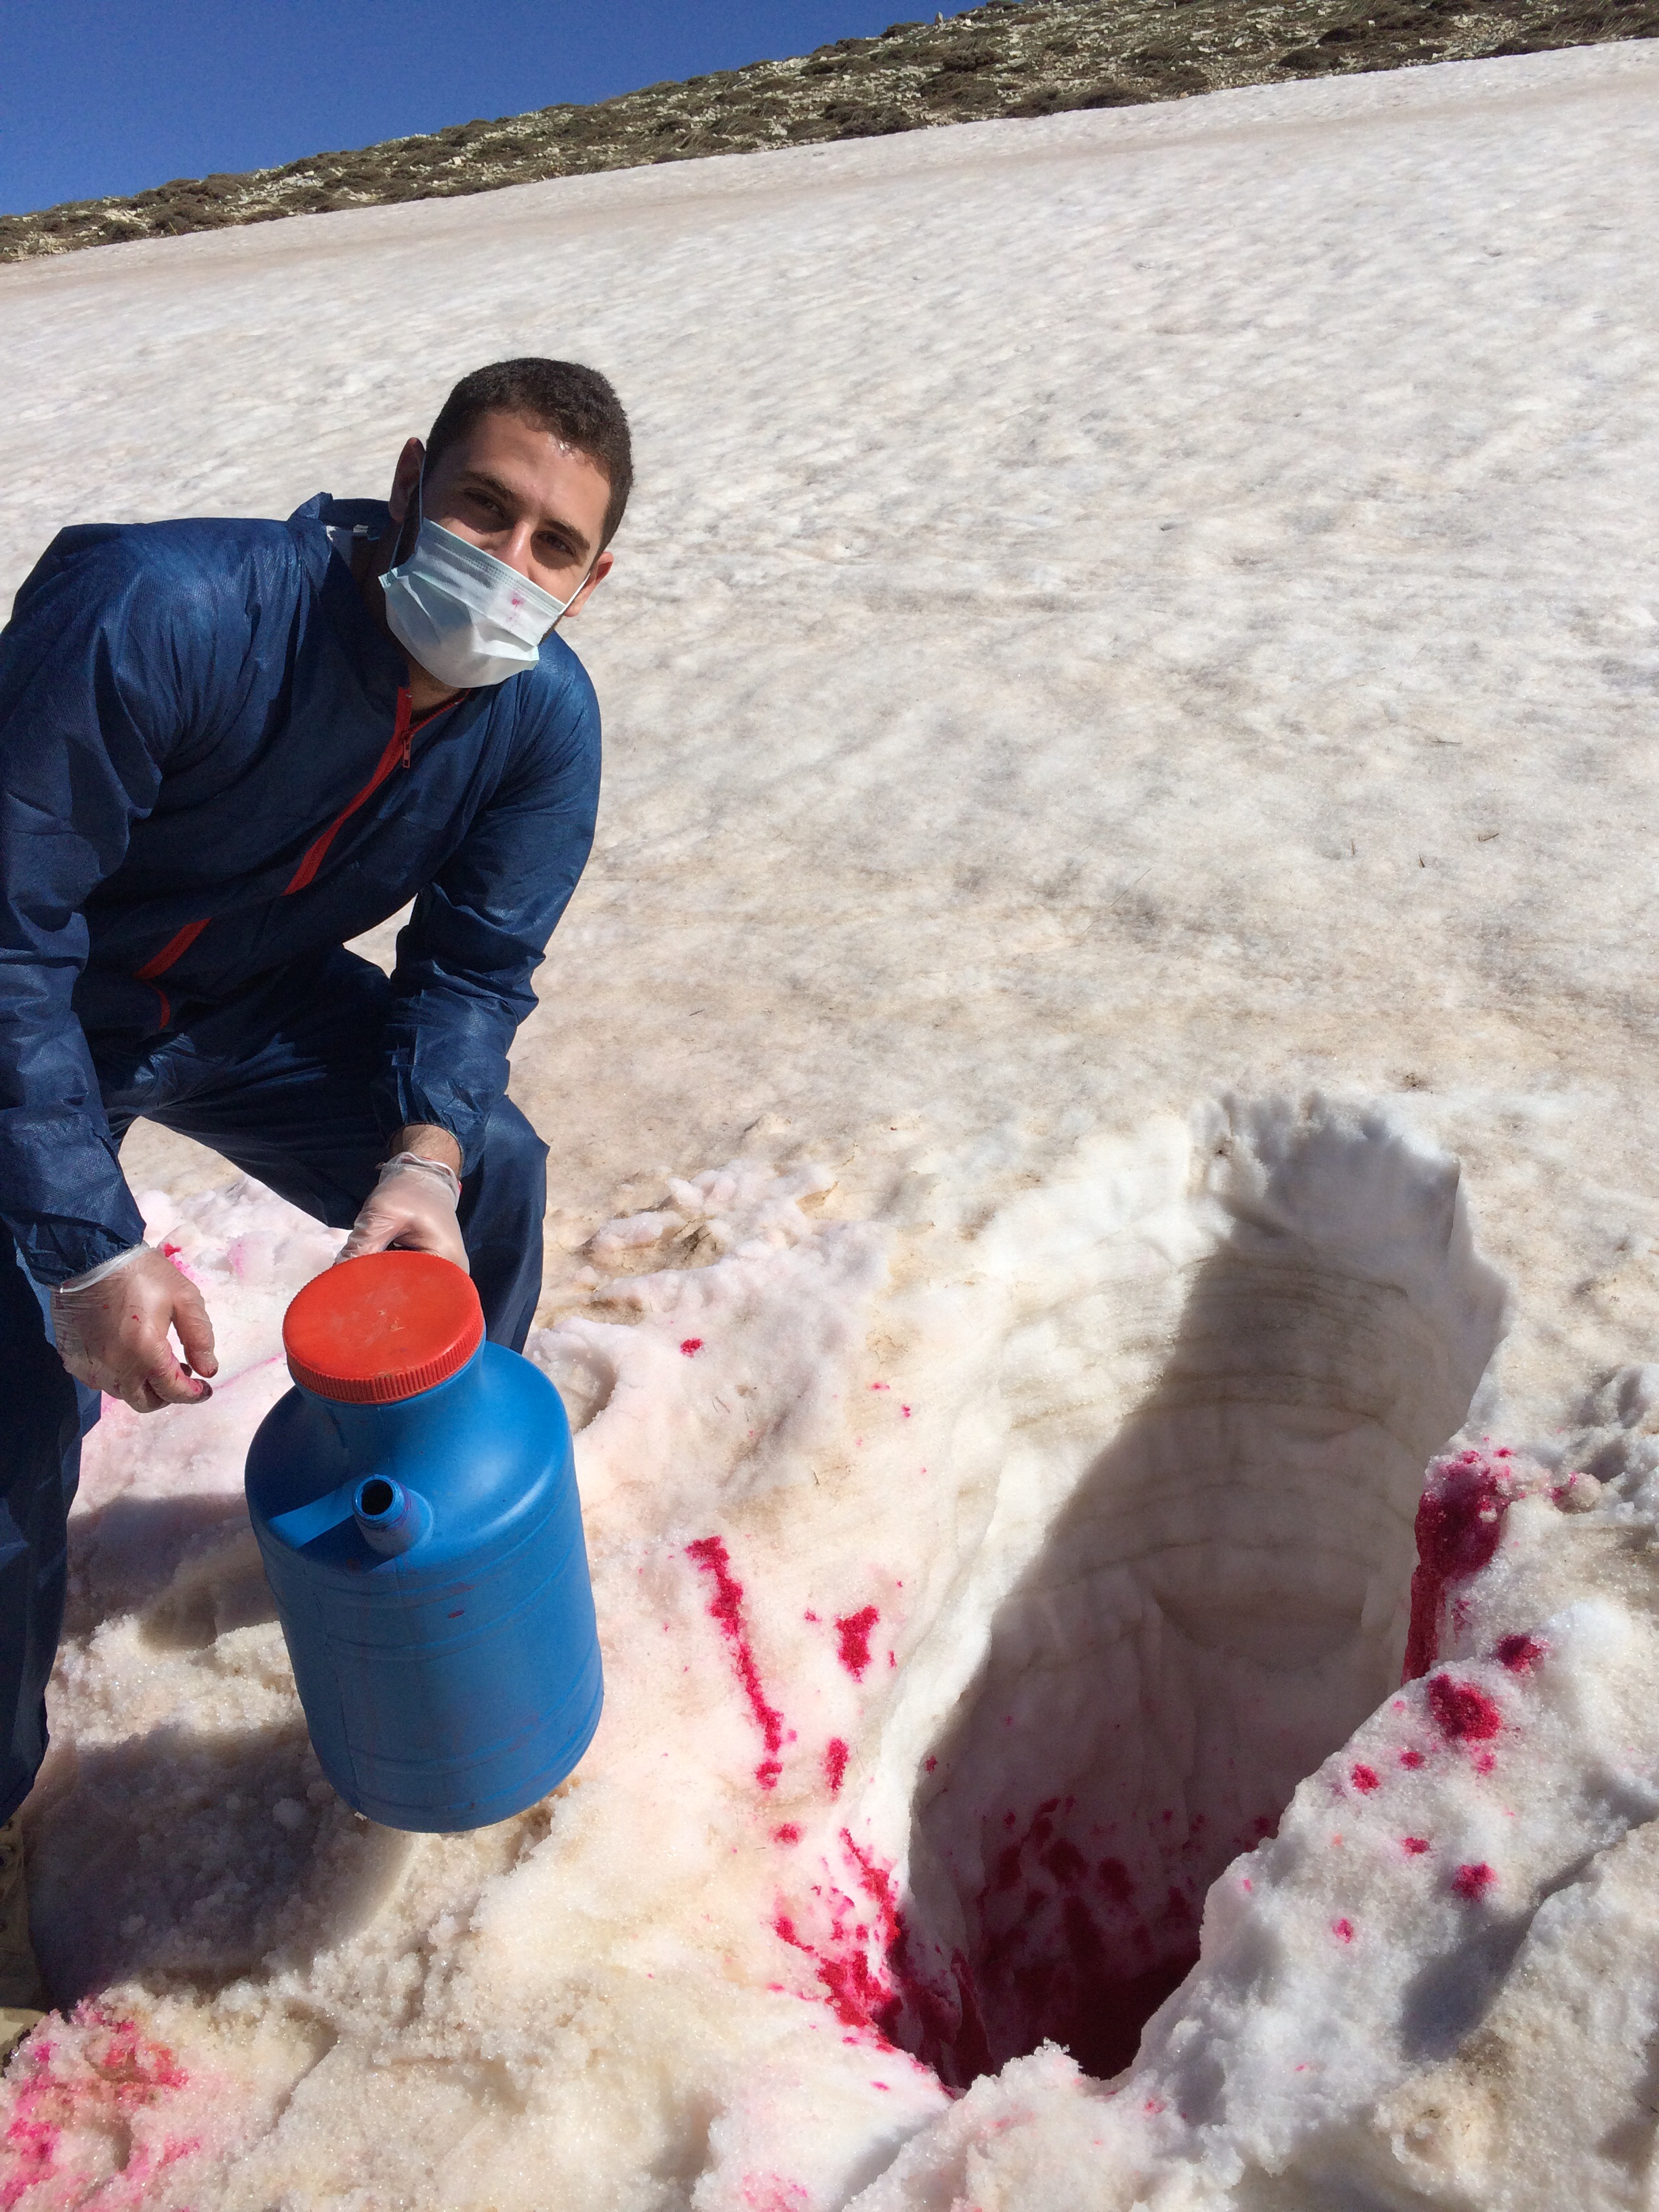 3-26 Doummar_ Injection of a red dye in a snow to monitor snowmelt